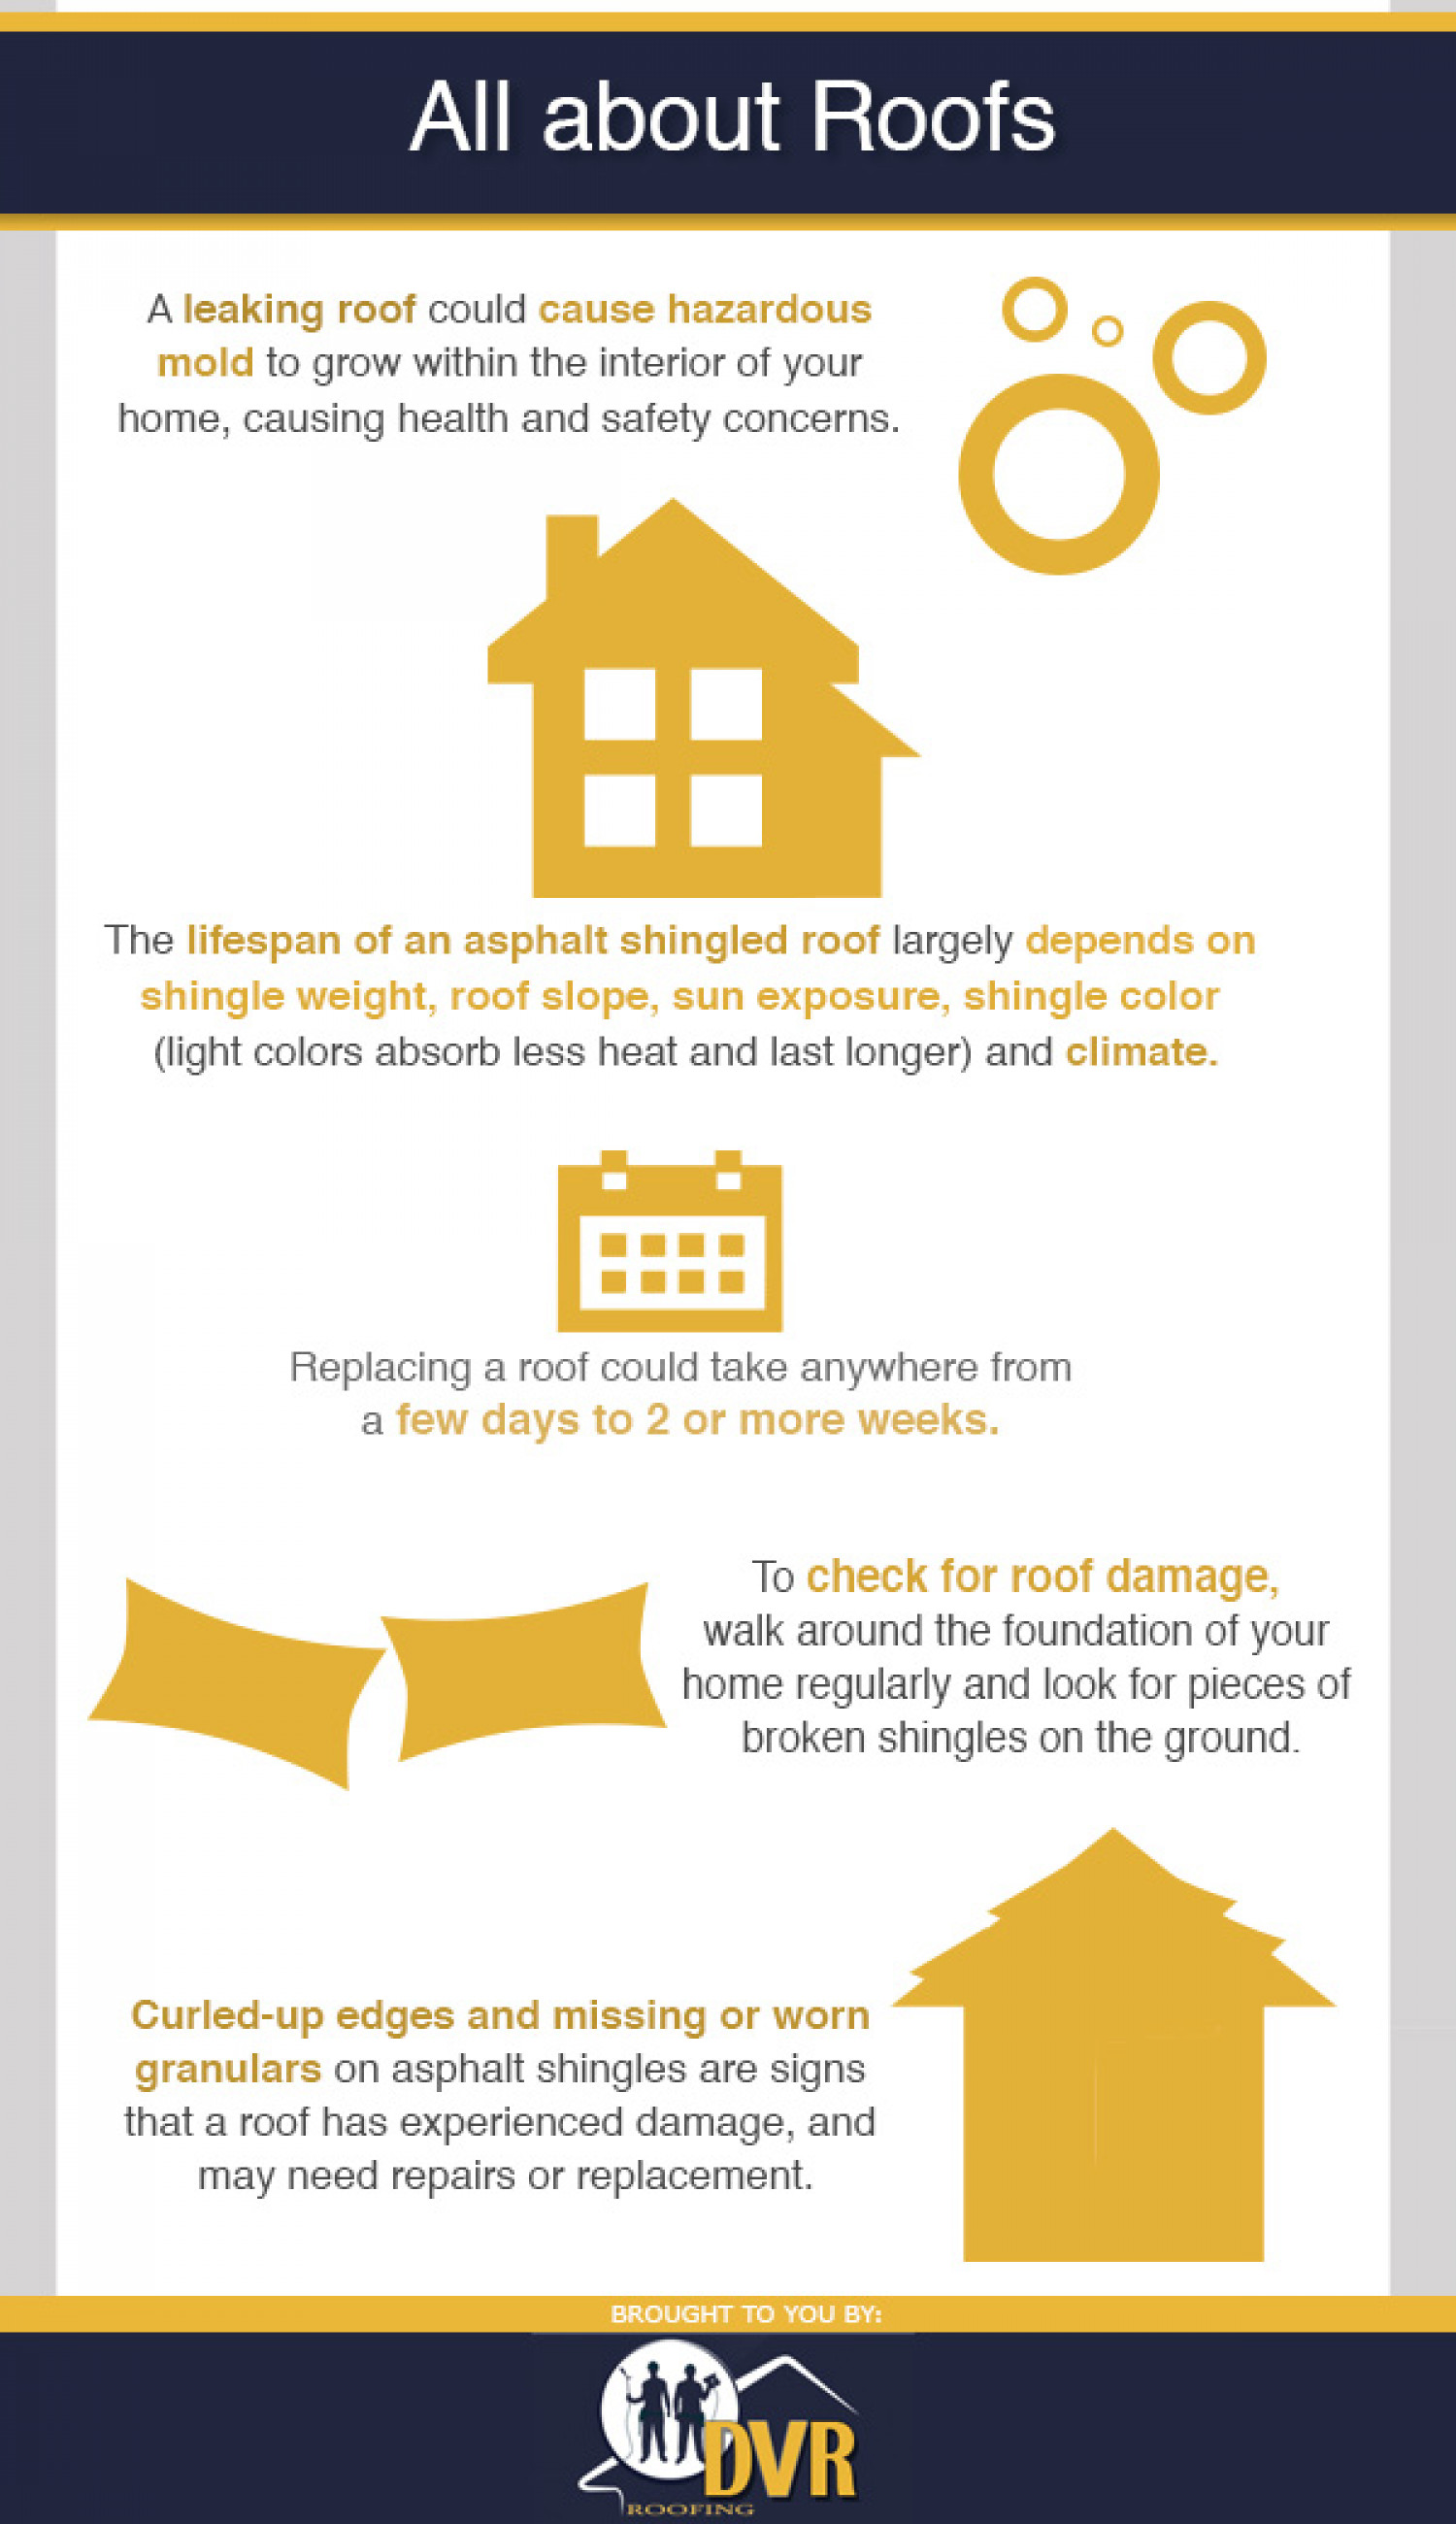 All about Roofs Infographic